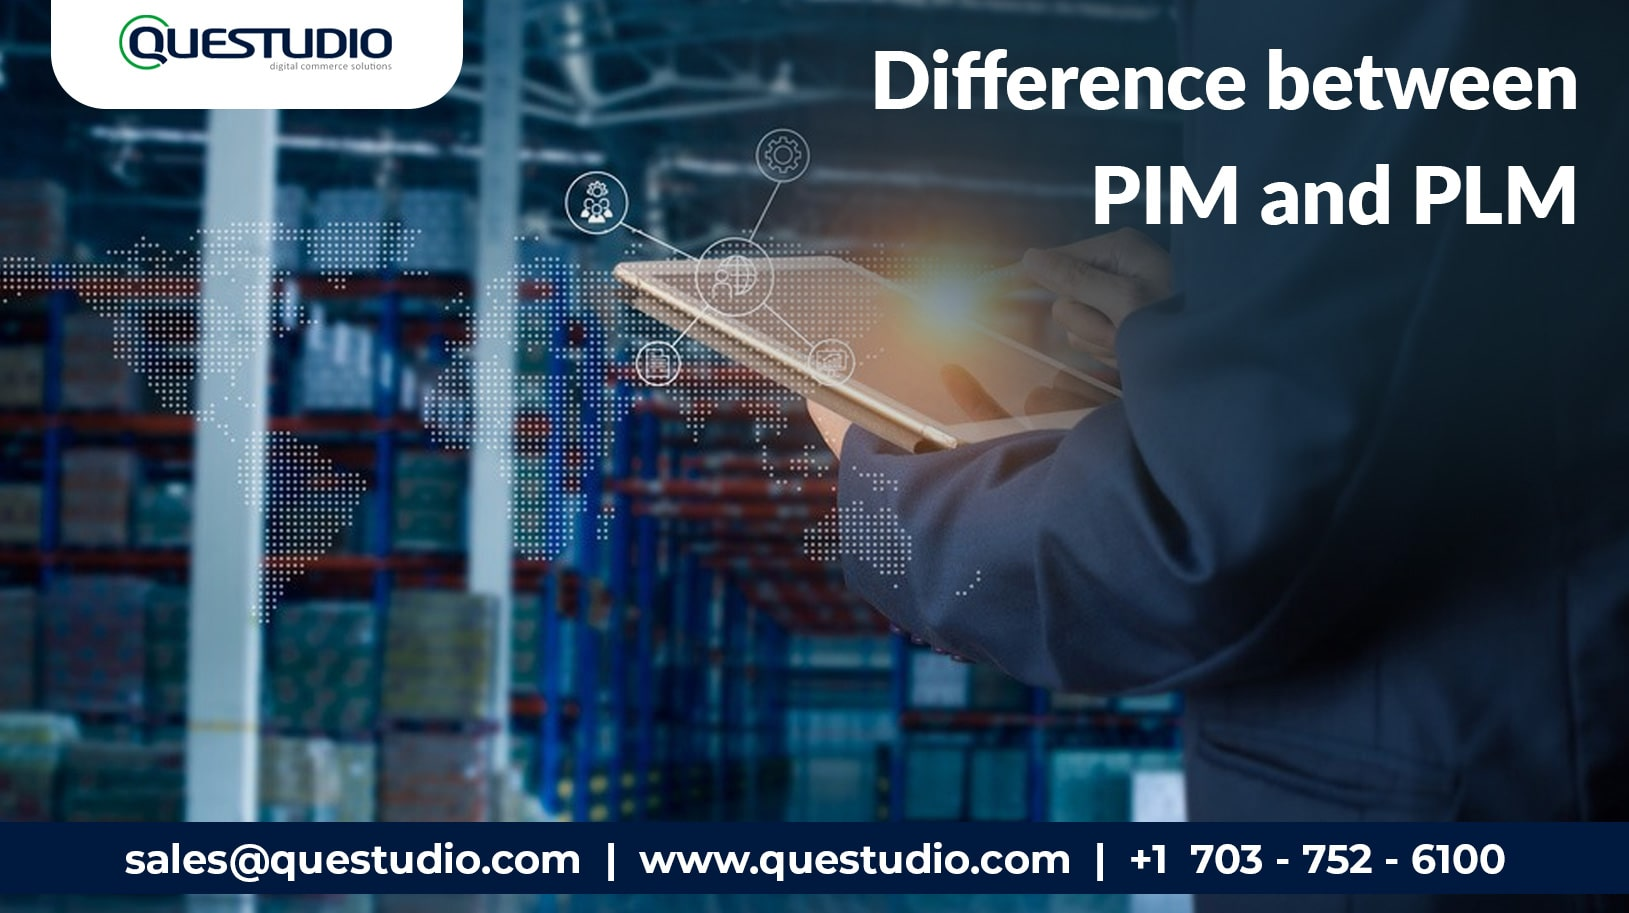 Difference between PIM and PLM